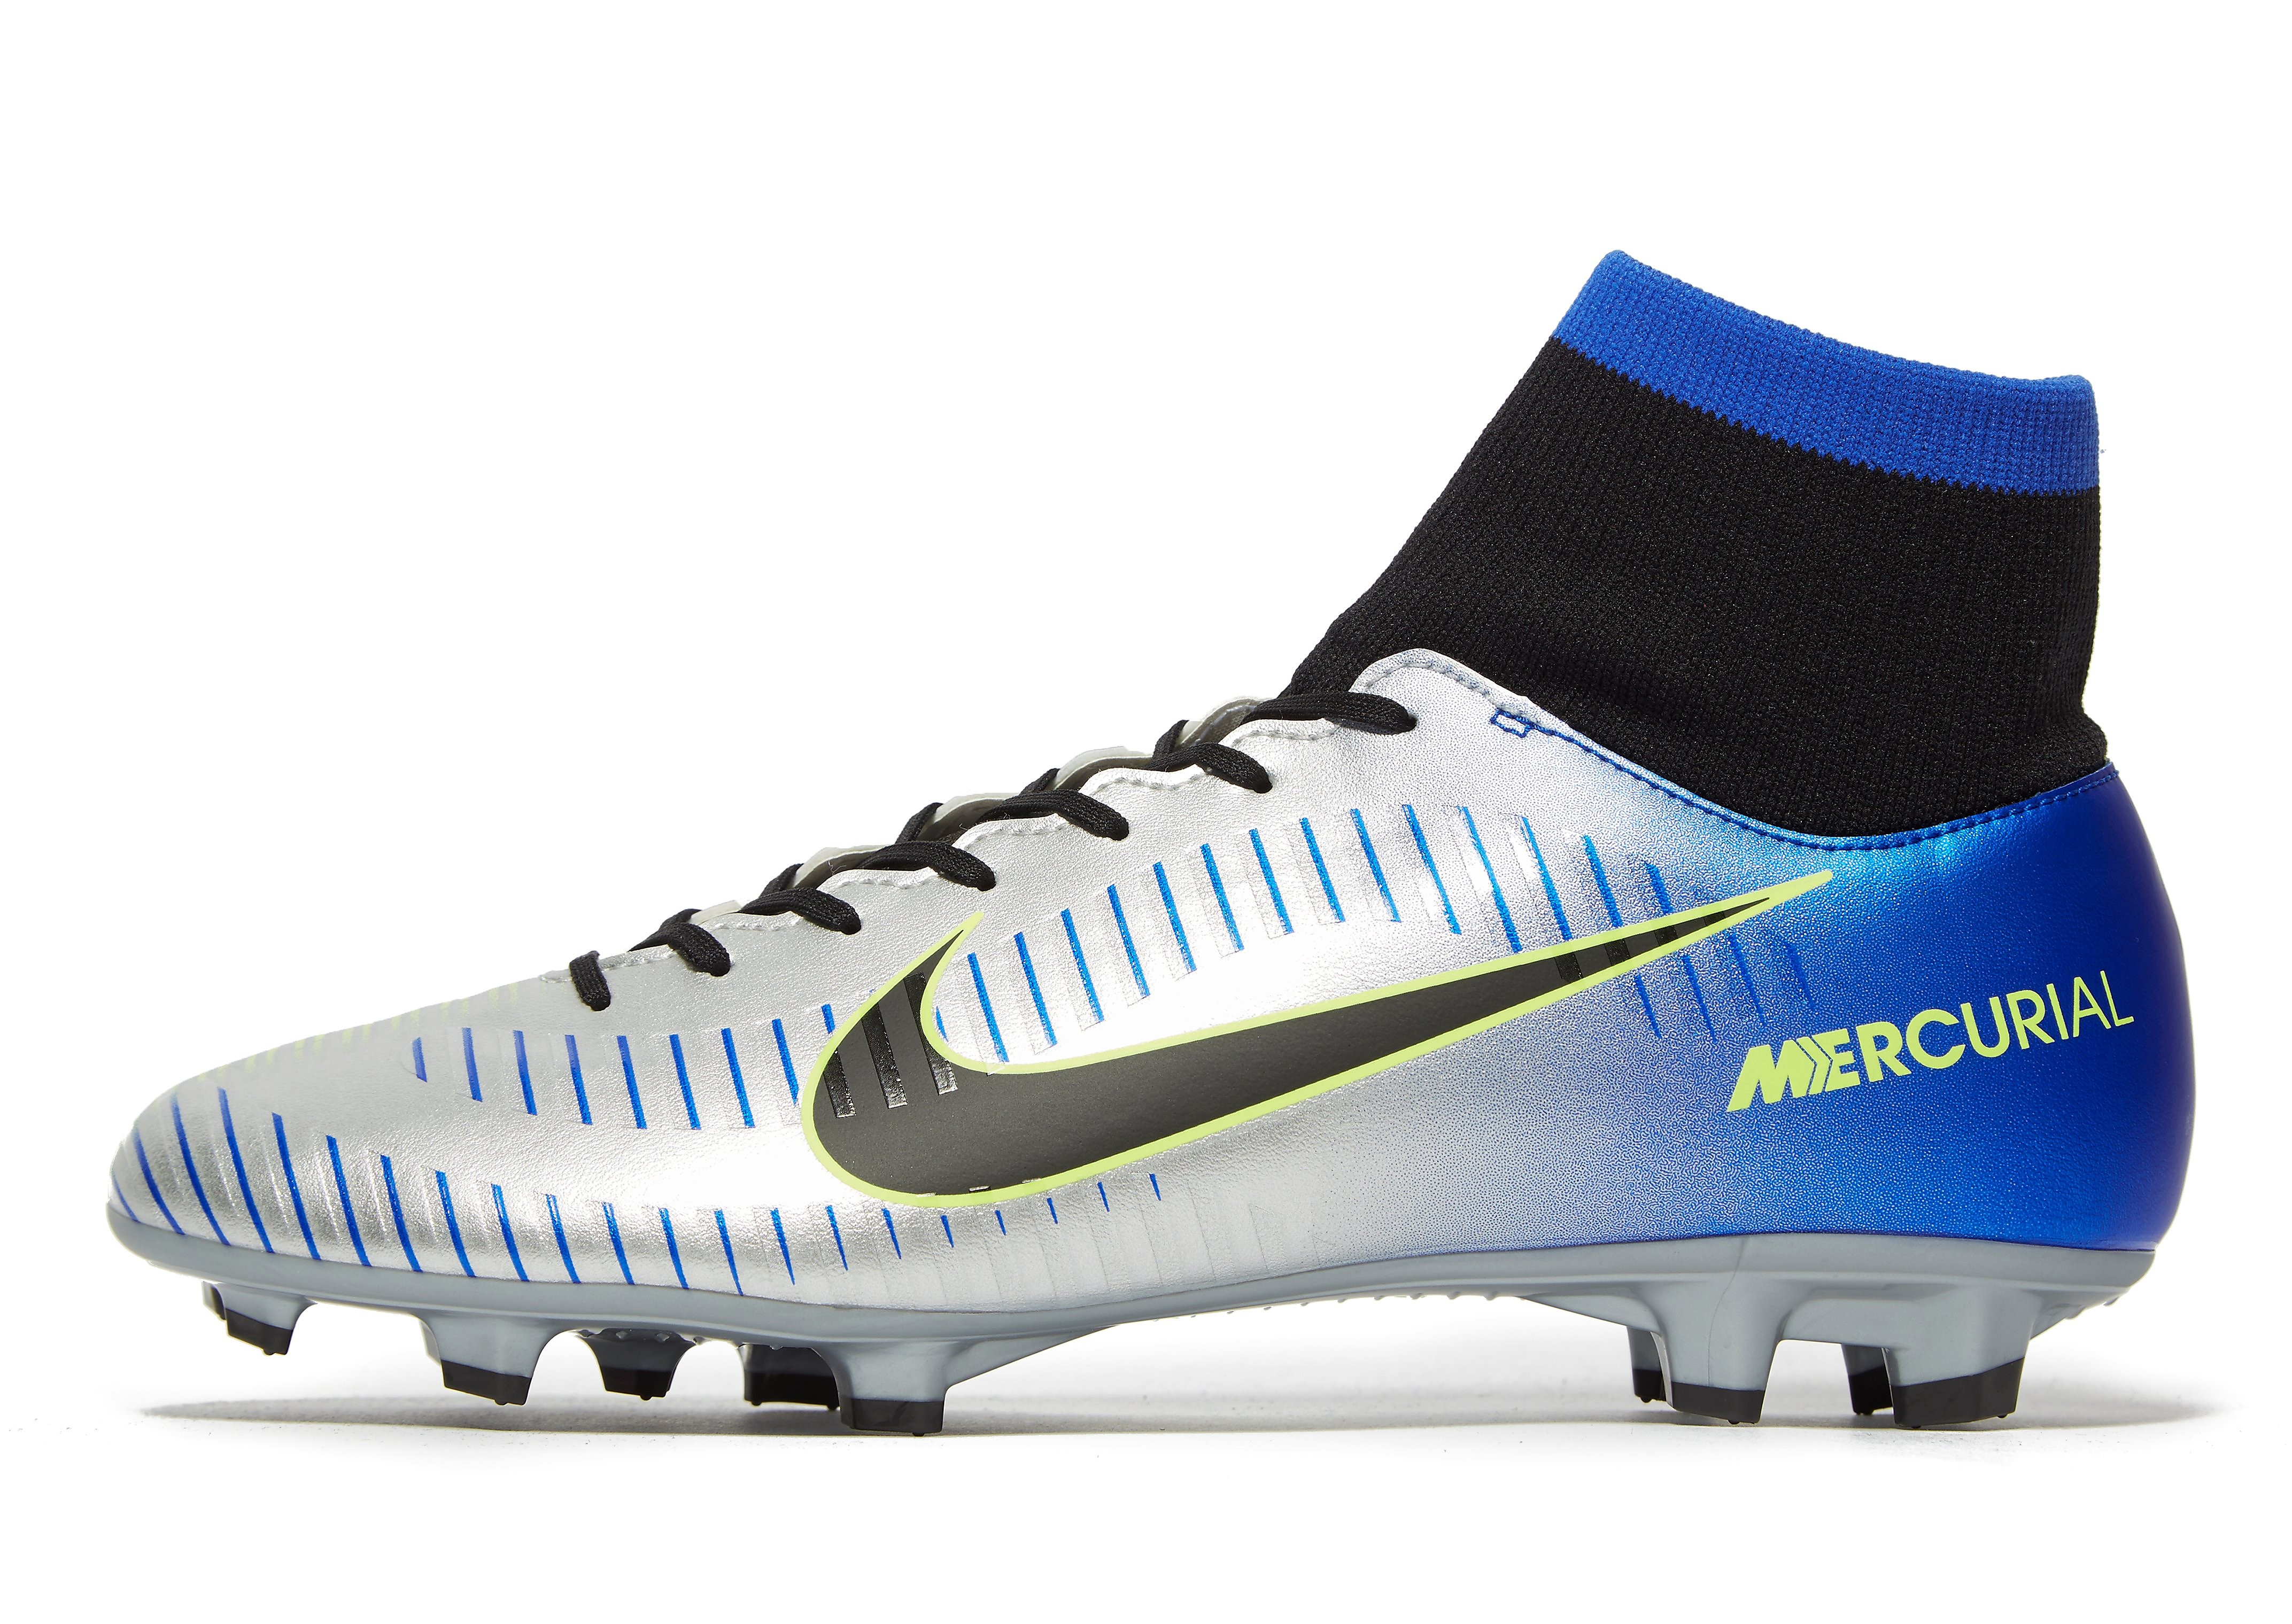 Nike Neymar Jr Mercurial Victory Dynamic Fit VI FG